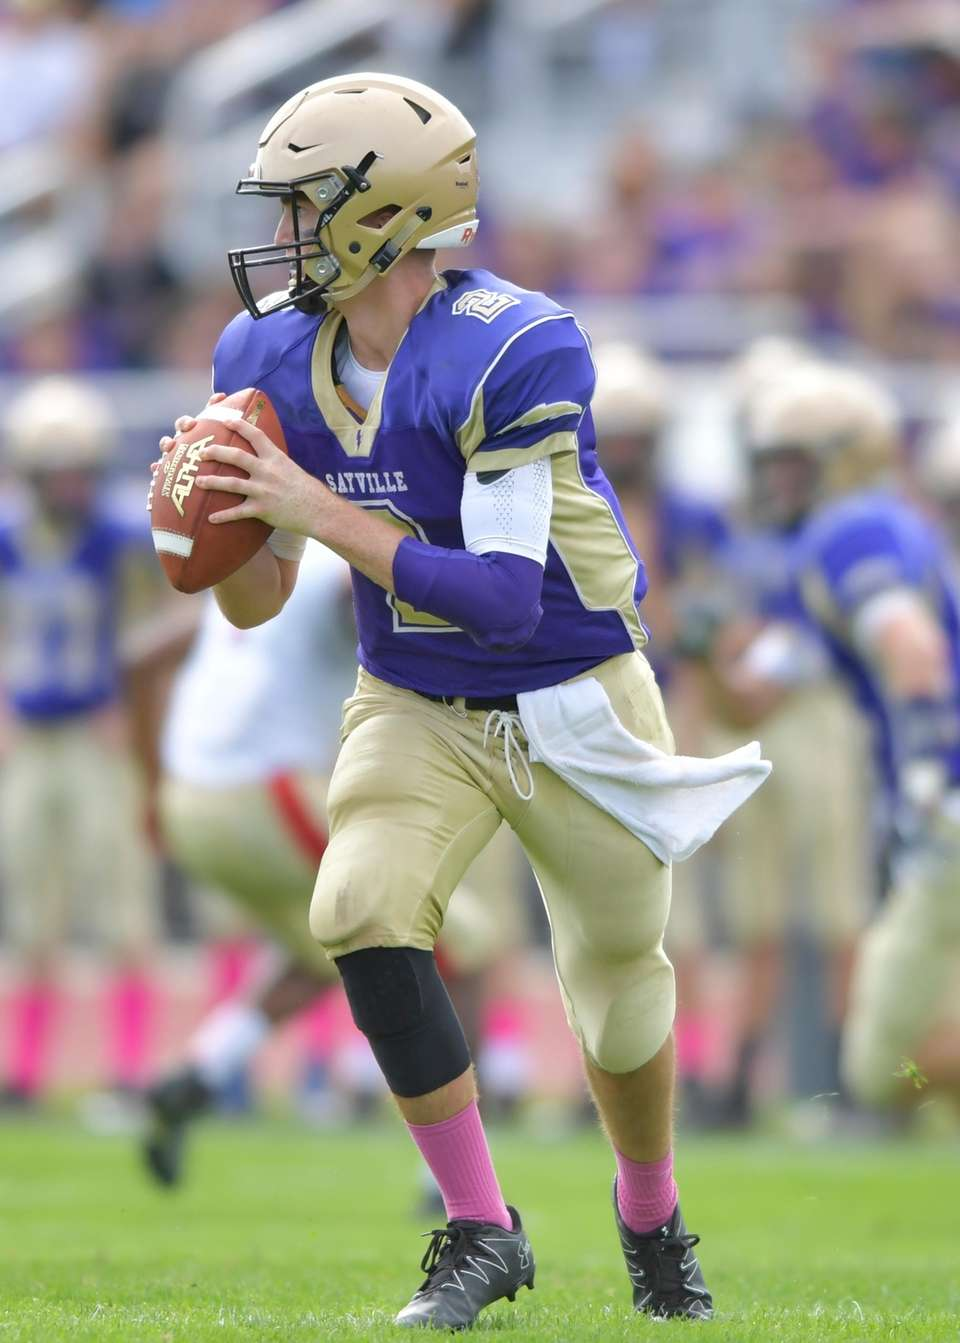 Sayville's Jacob Cheshire rolls out to the left